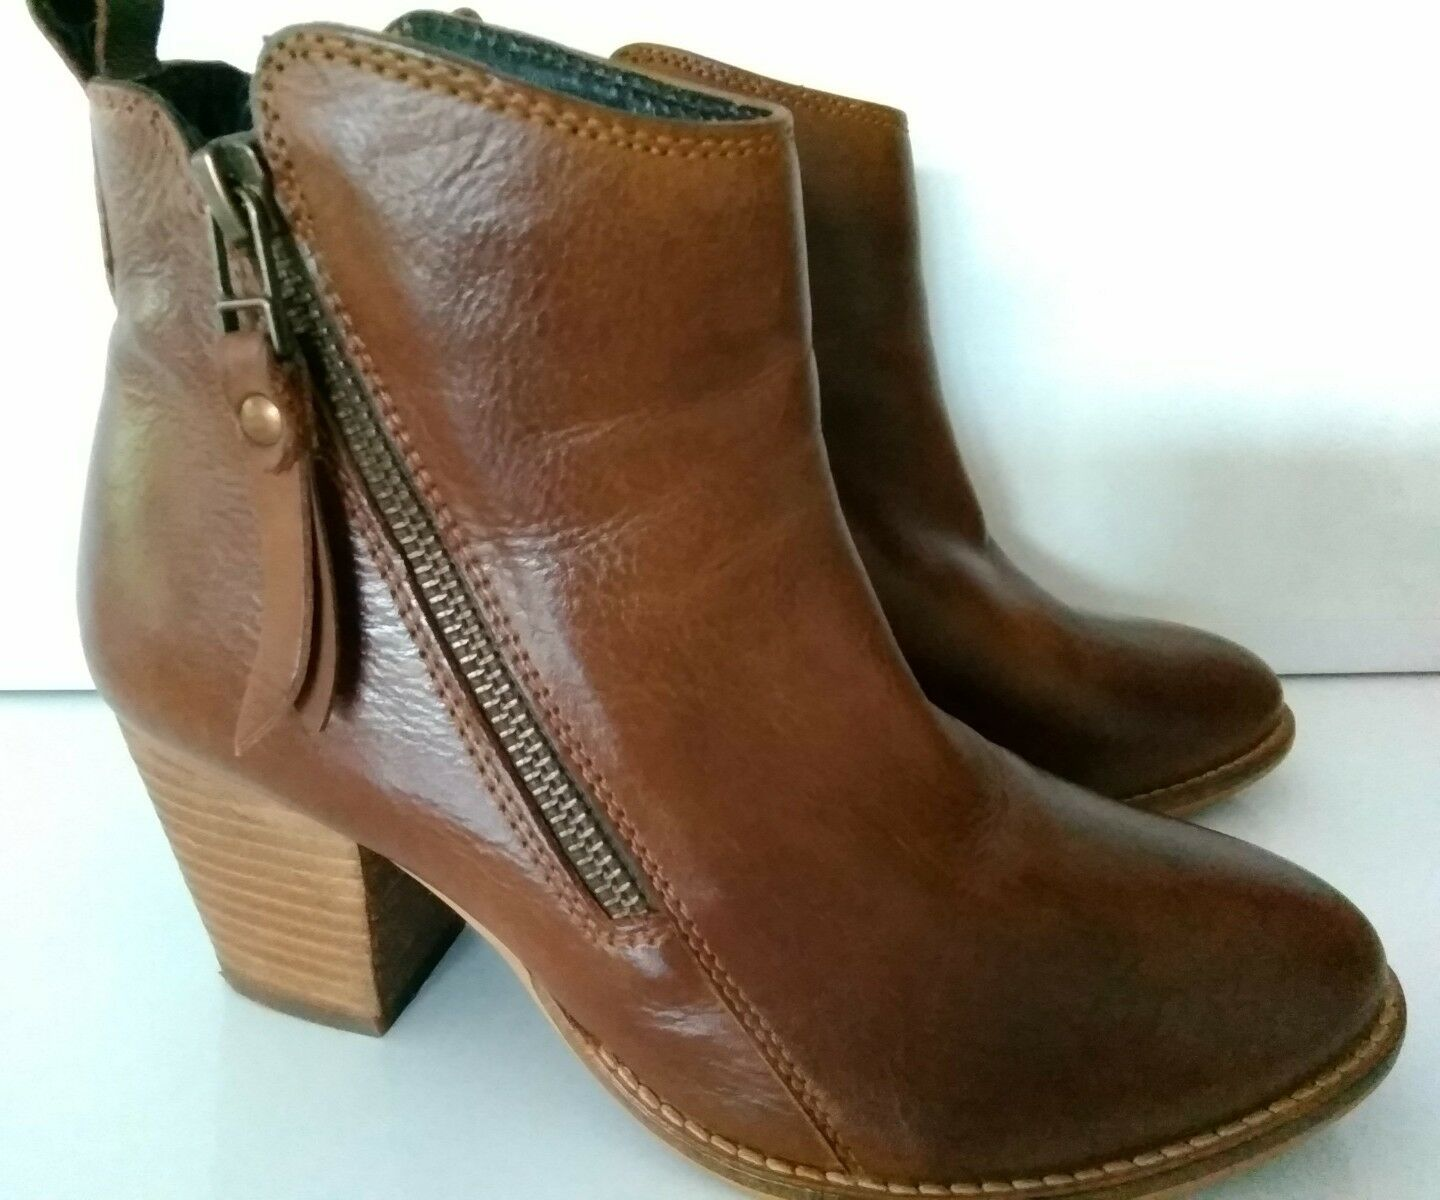 """DUNE Ladies """"PONTOON"""", Tan Leather Ankle Boots,  SIZE 36, RRP £99 - BARGAIN"""